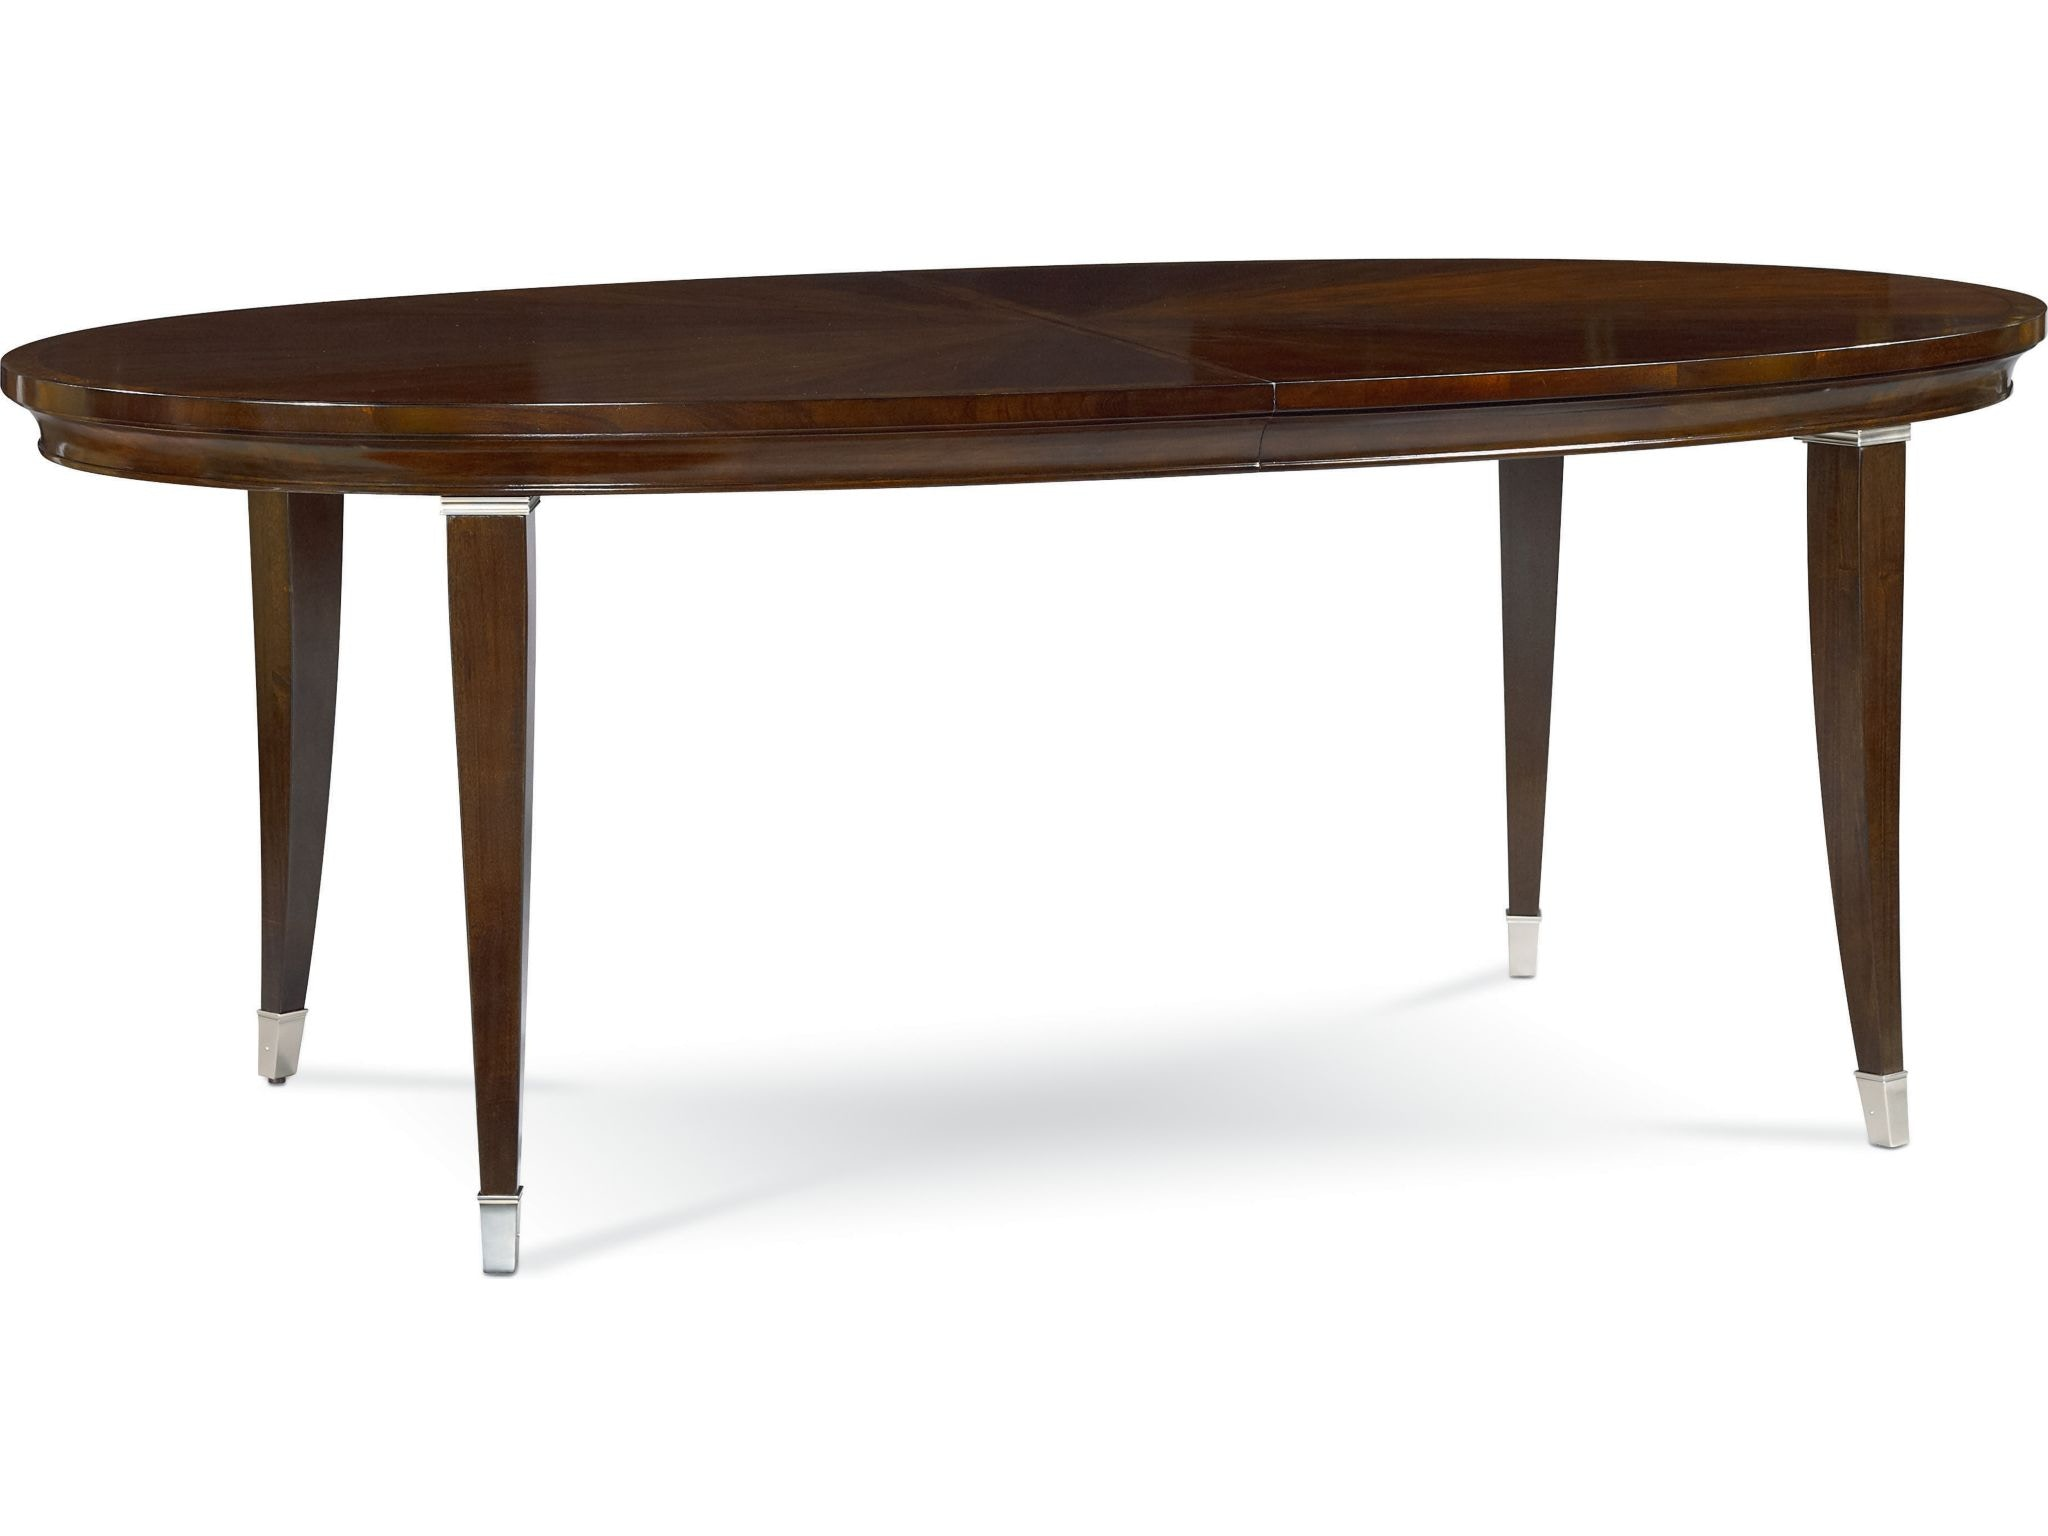 Thomasville Oval Dining Table 82221 751